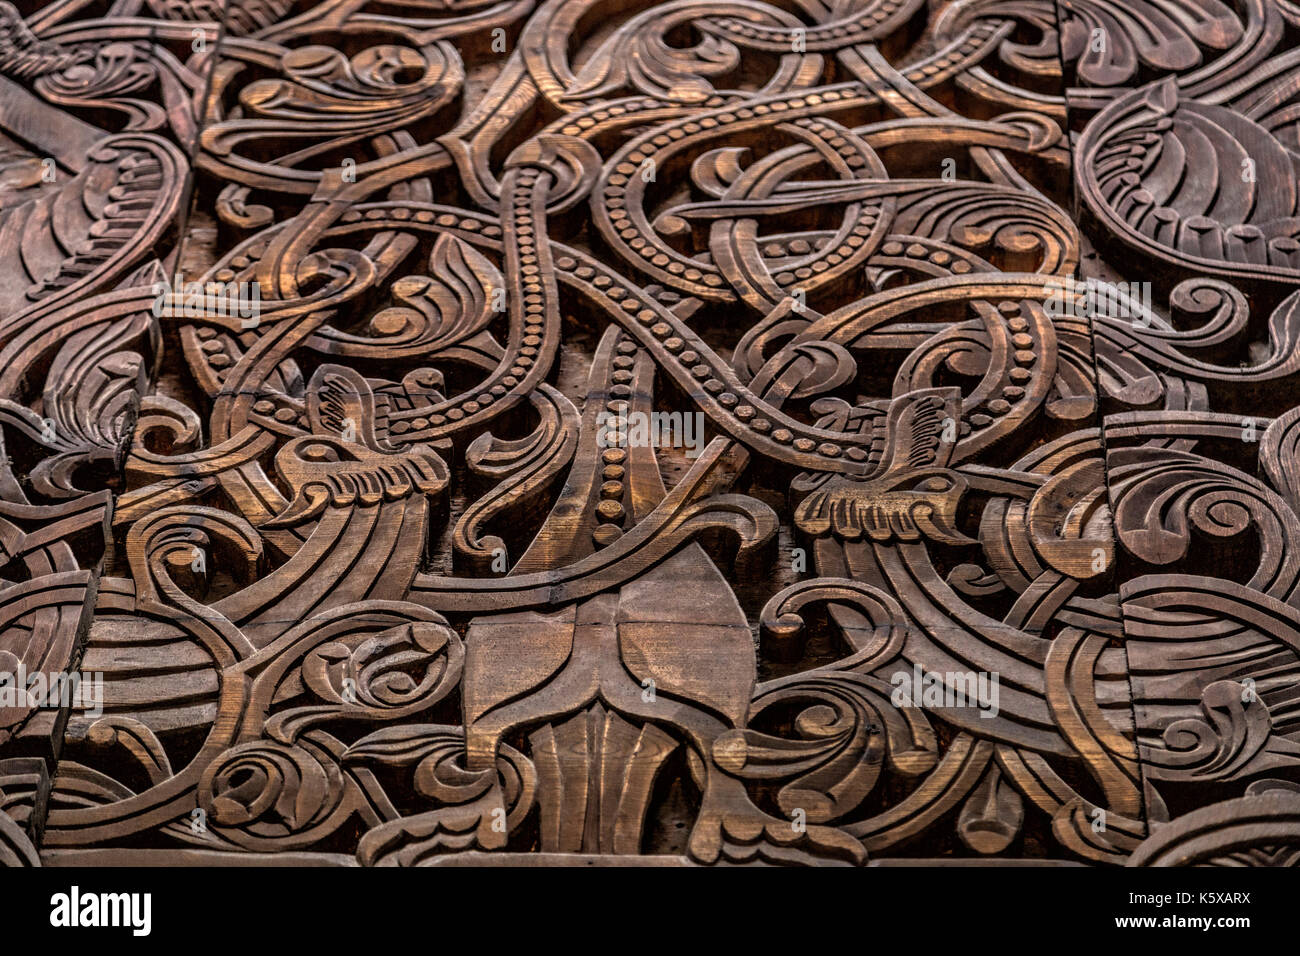 Close-up of woodcarvings of the Stave church portal in the NORSK FOLKEMUSEUM-  an open air Museum of Norwegian Cultural History, Oslo, Bygdøy, Norway. - Stock Image